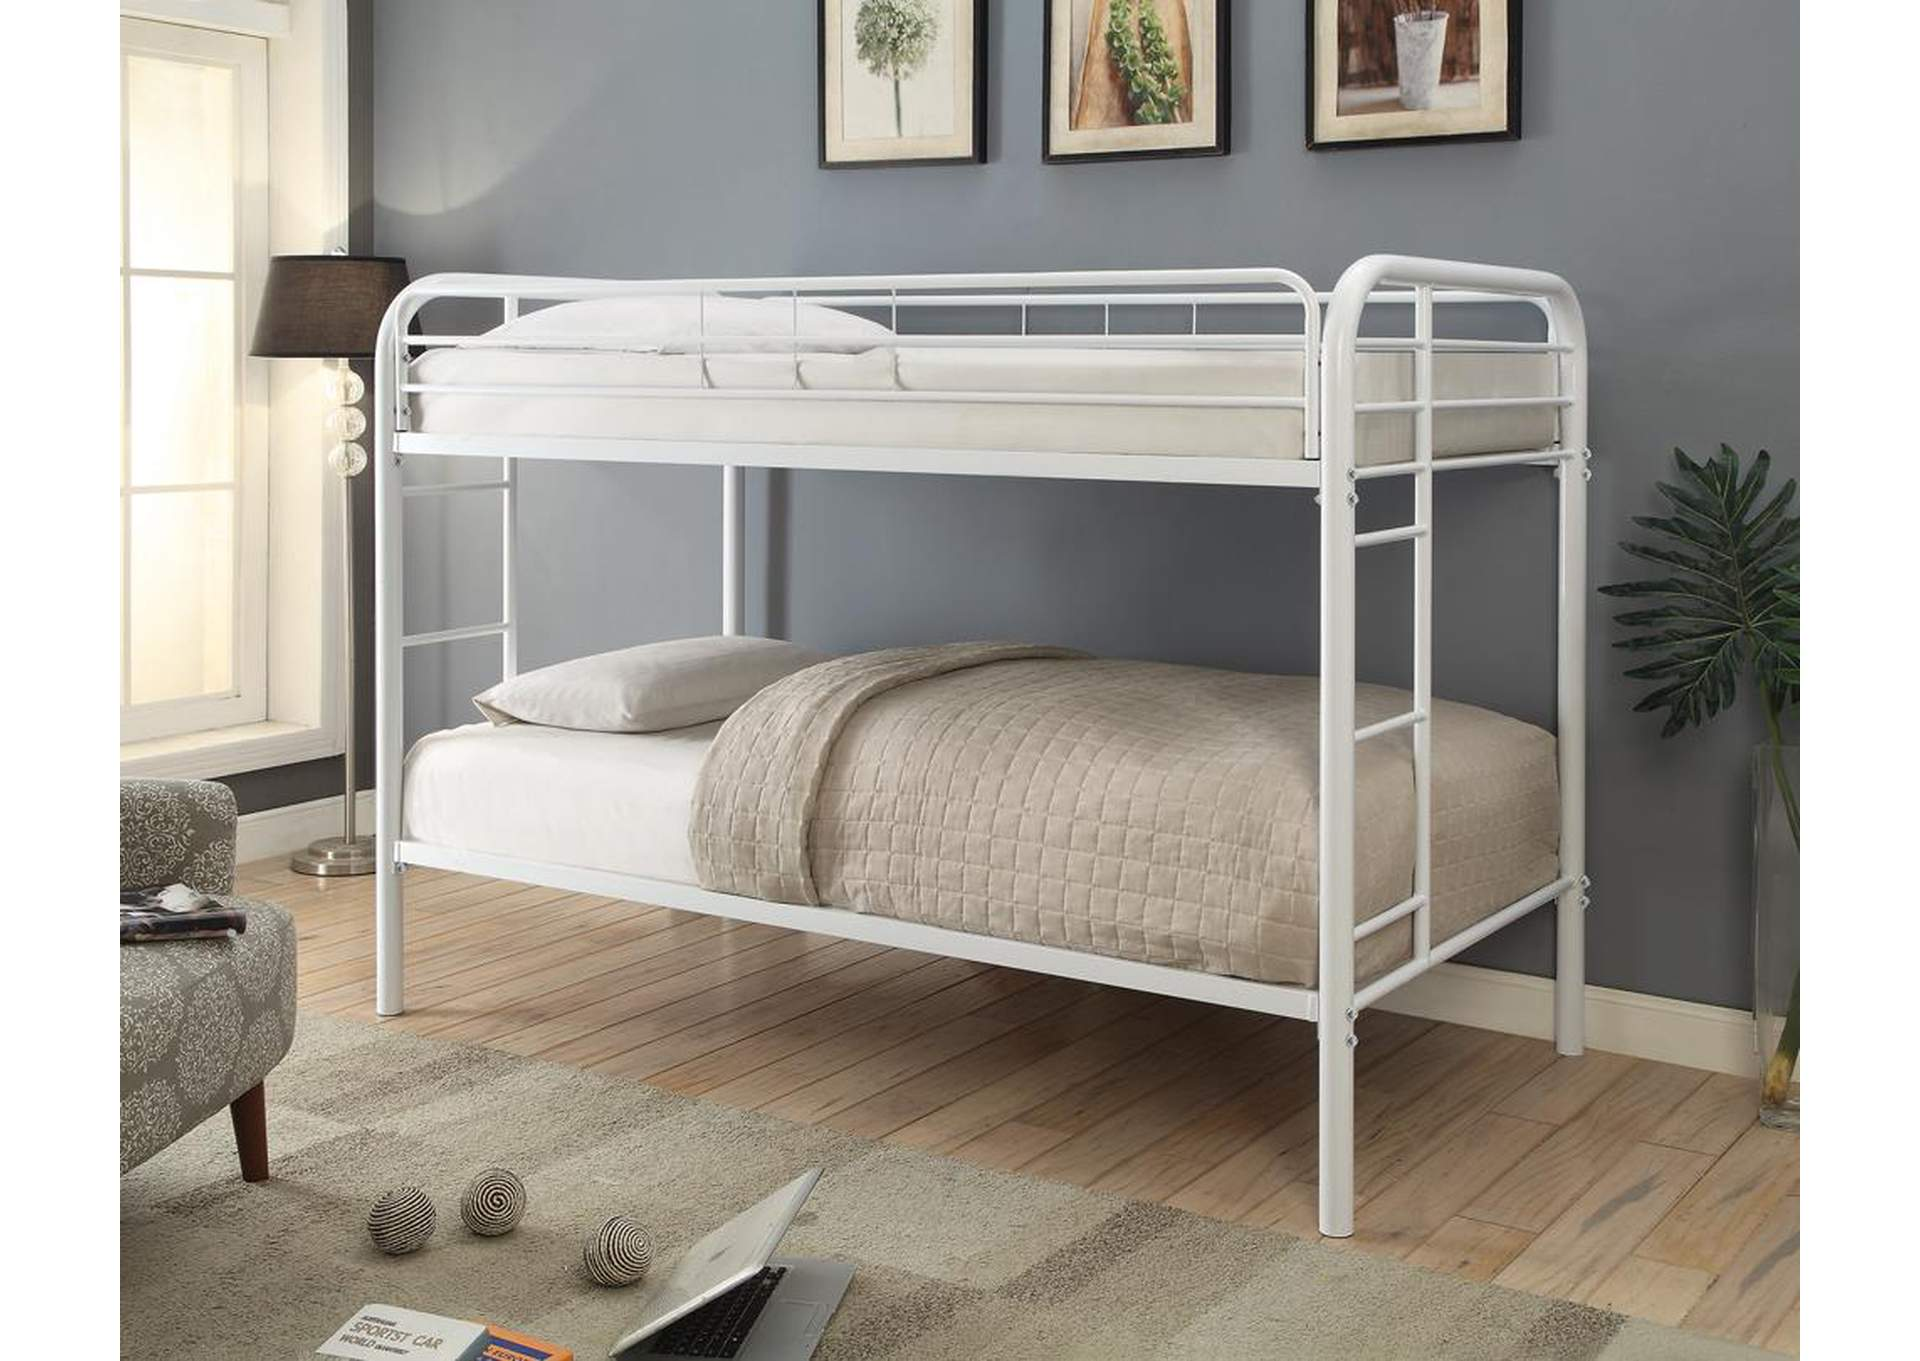 Ordinaire White Twin/Twin Bunk Bed,Coaster Furniture